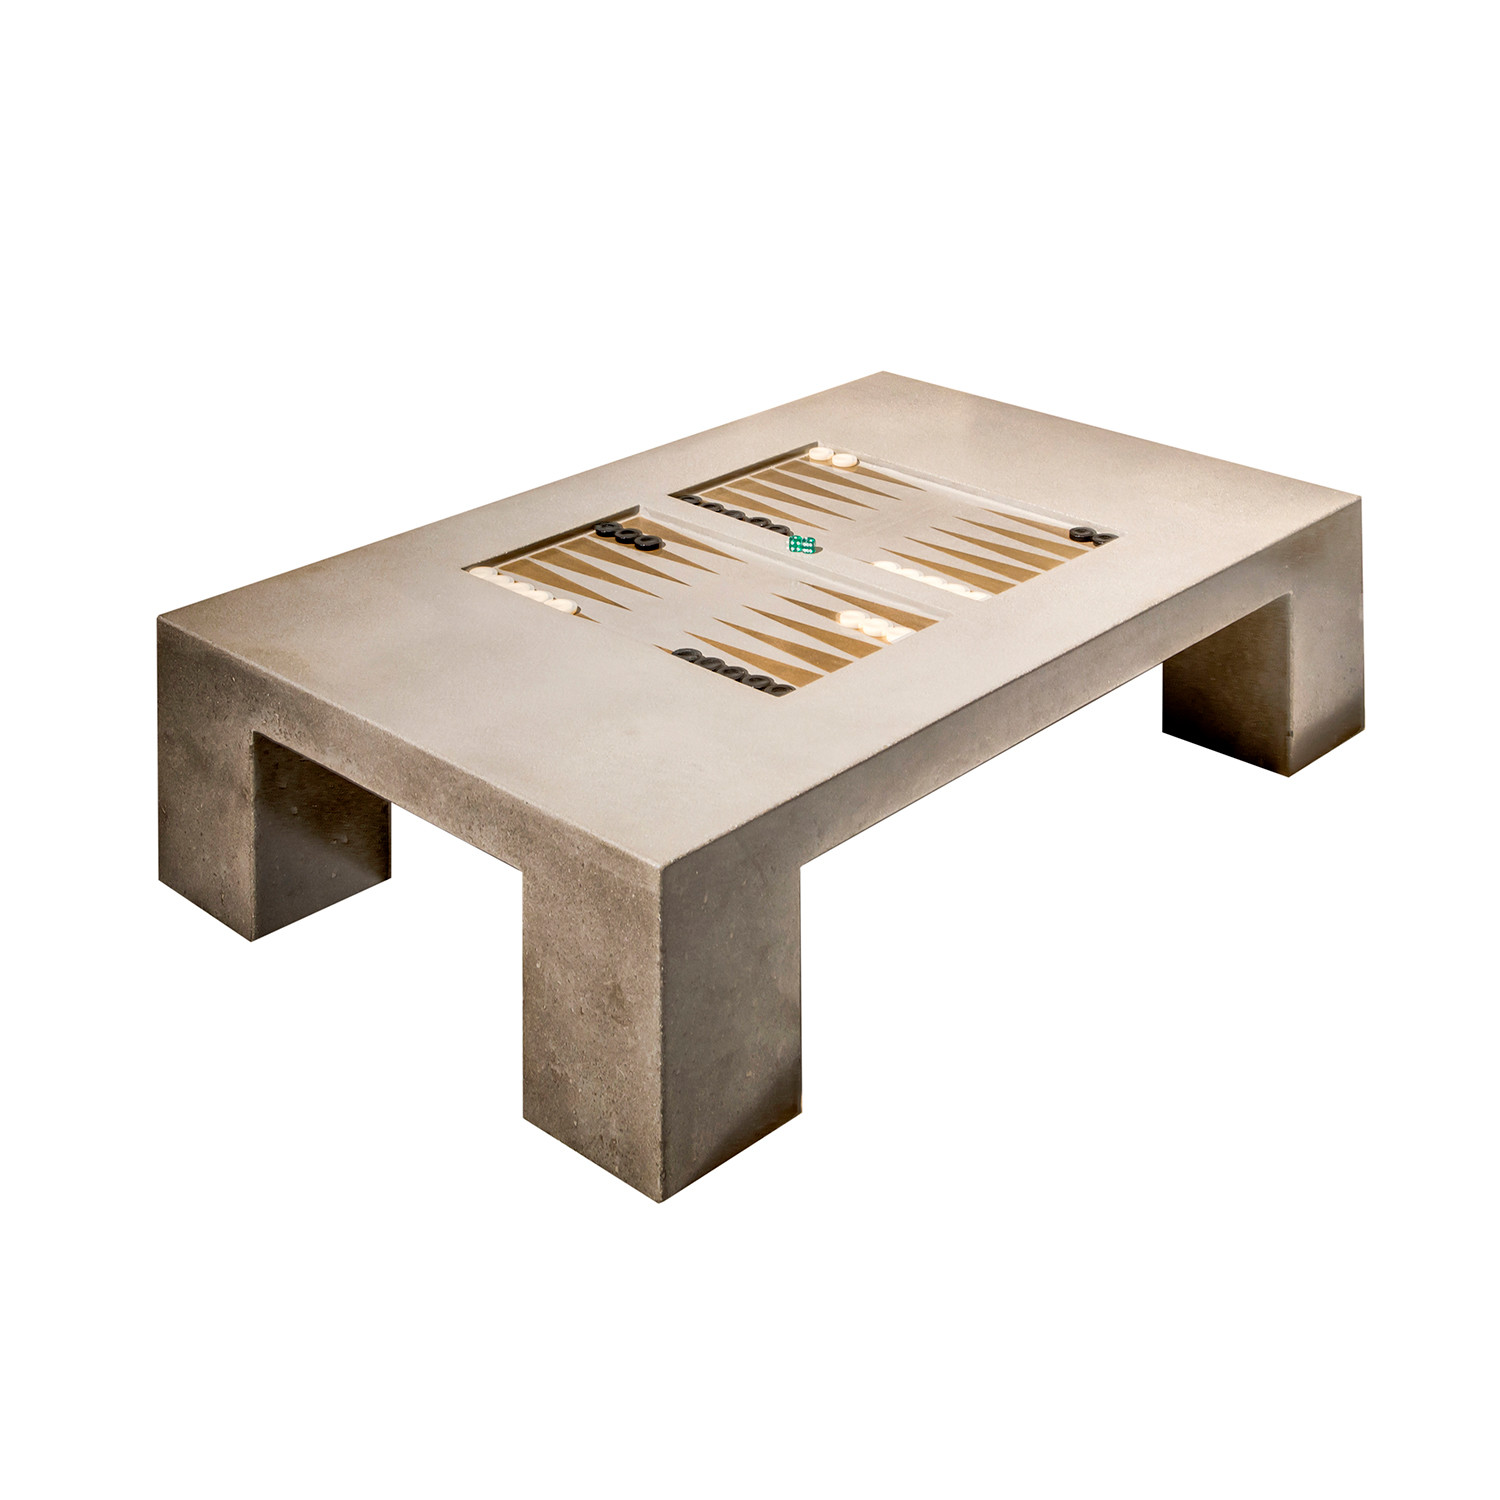 Block backgammon table james de wulf touch of modern for What is touchofmodern